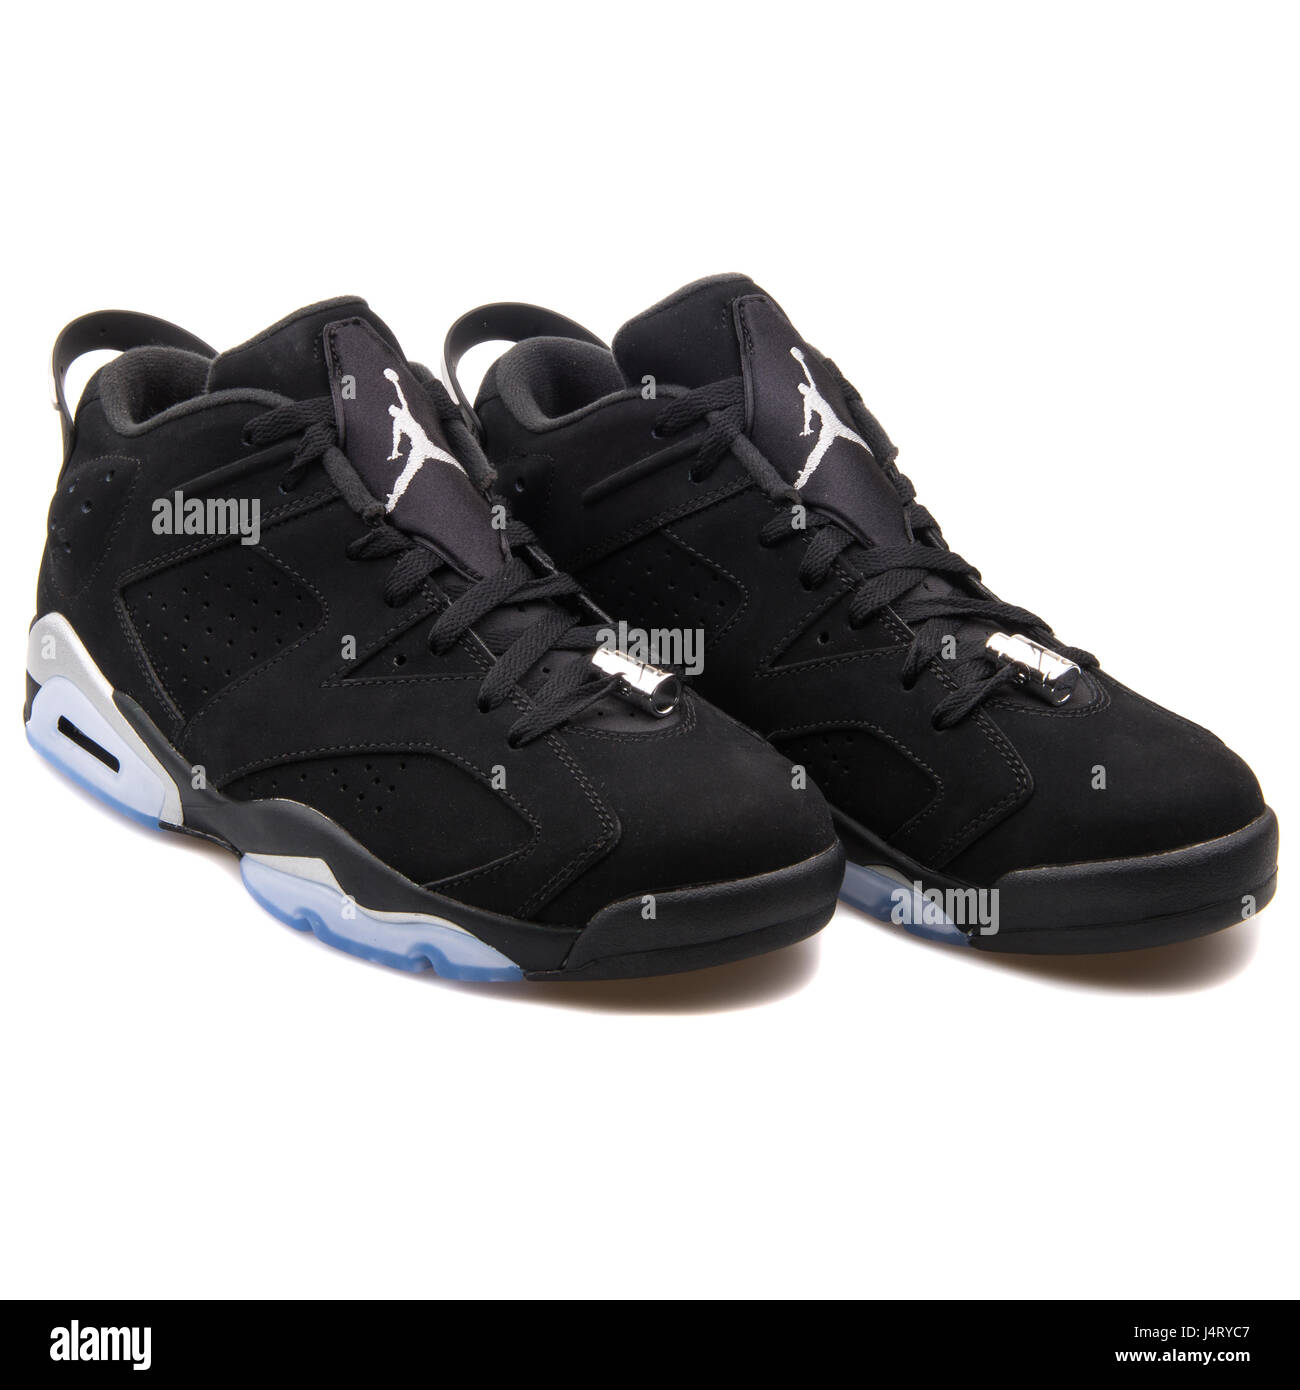 huge selection of 71eb8 d07a5 Nike Air Jordan VI Retro 6 Low Chrome Black Metallic Silver ...